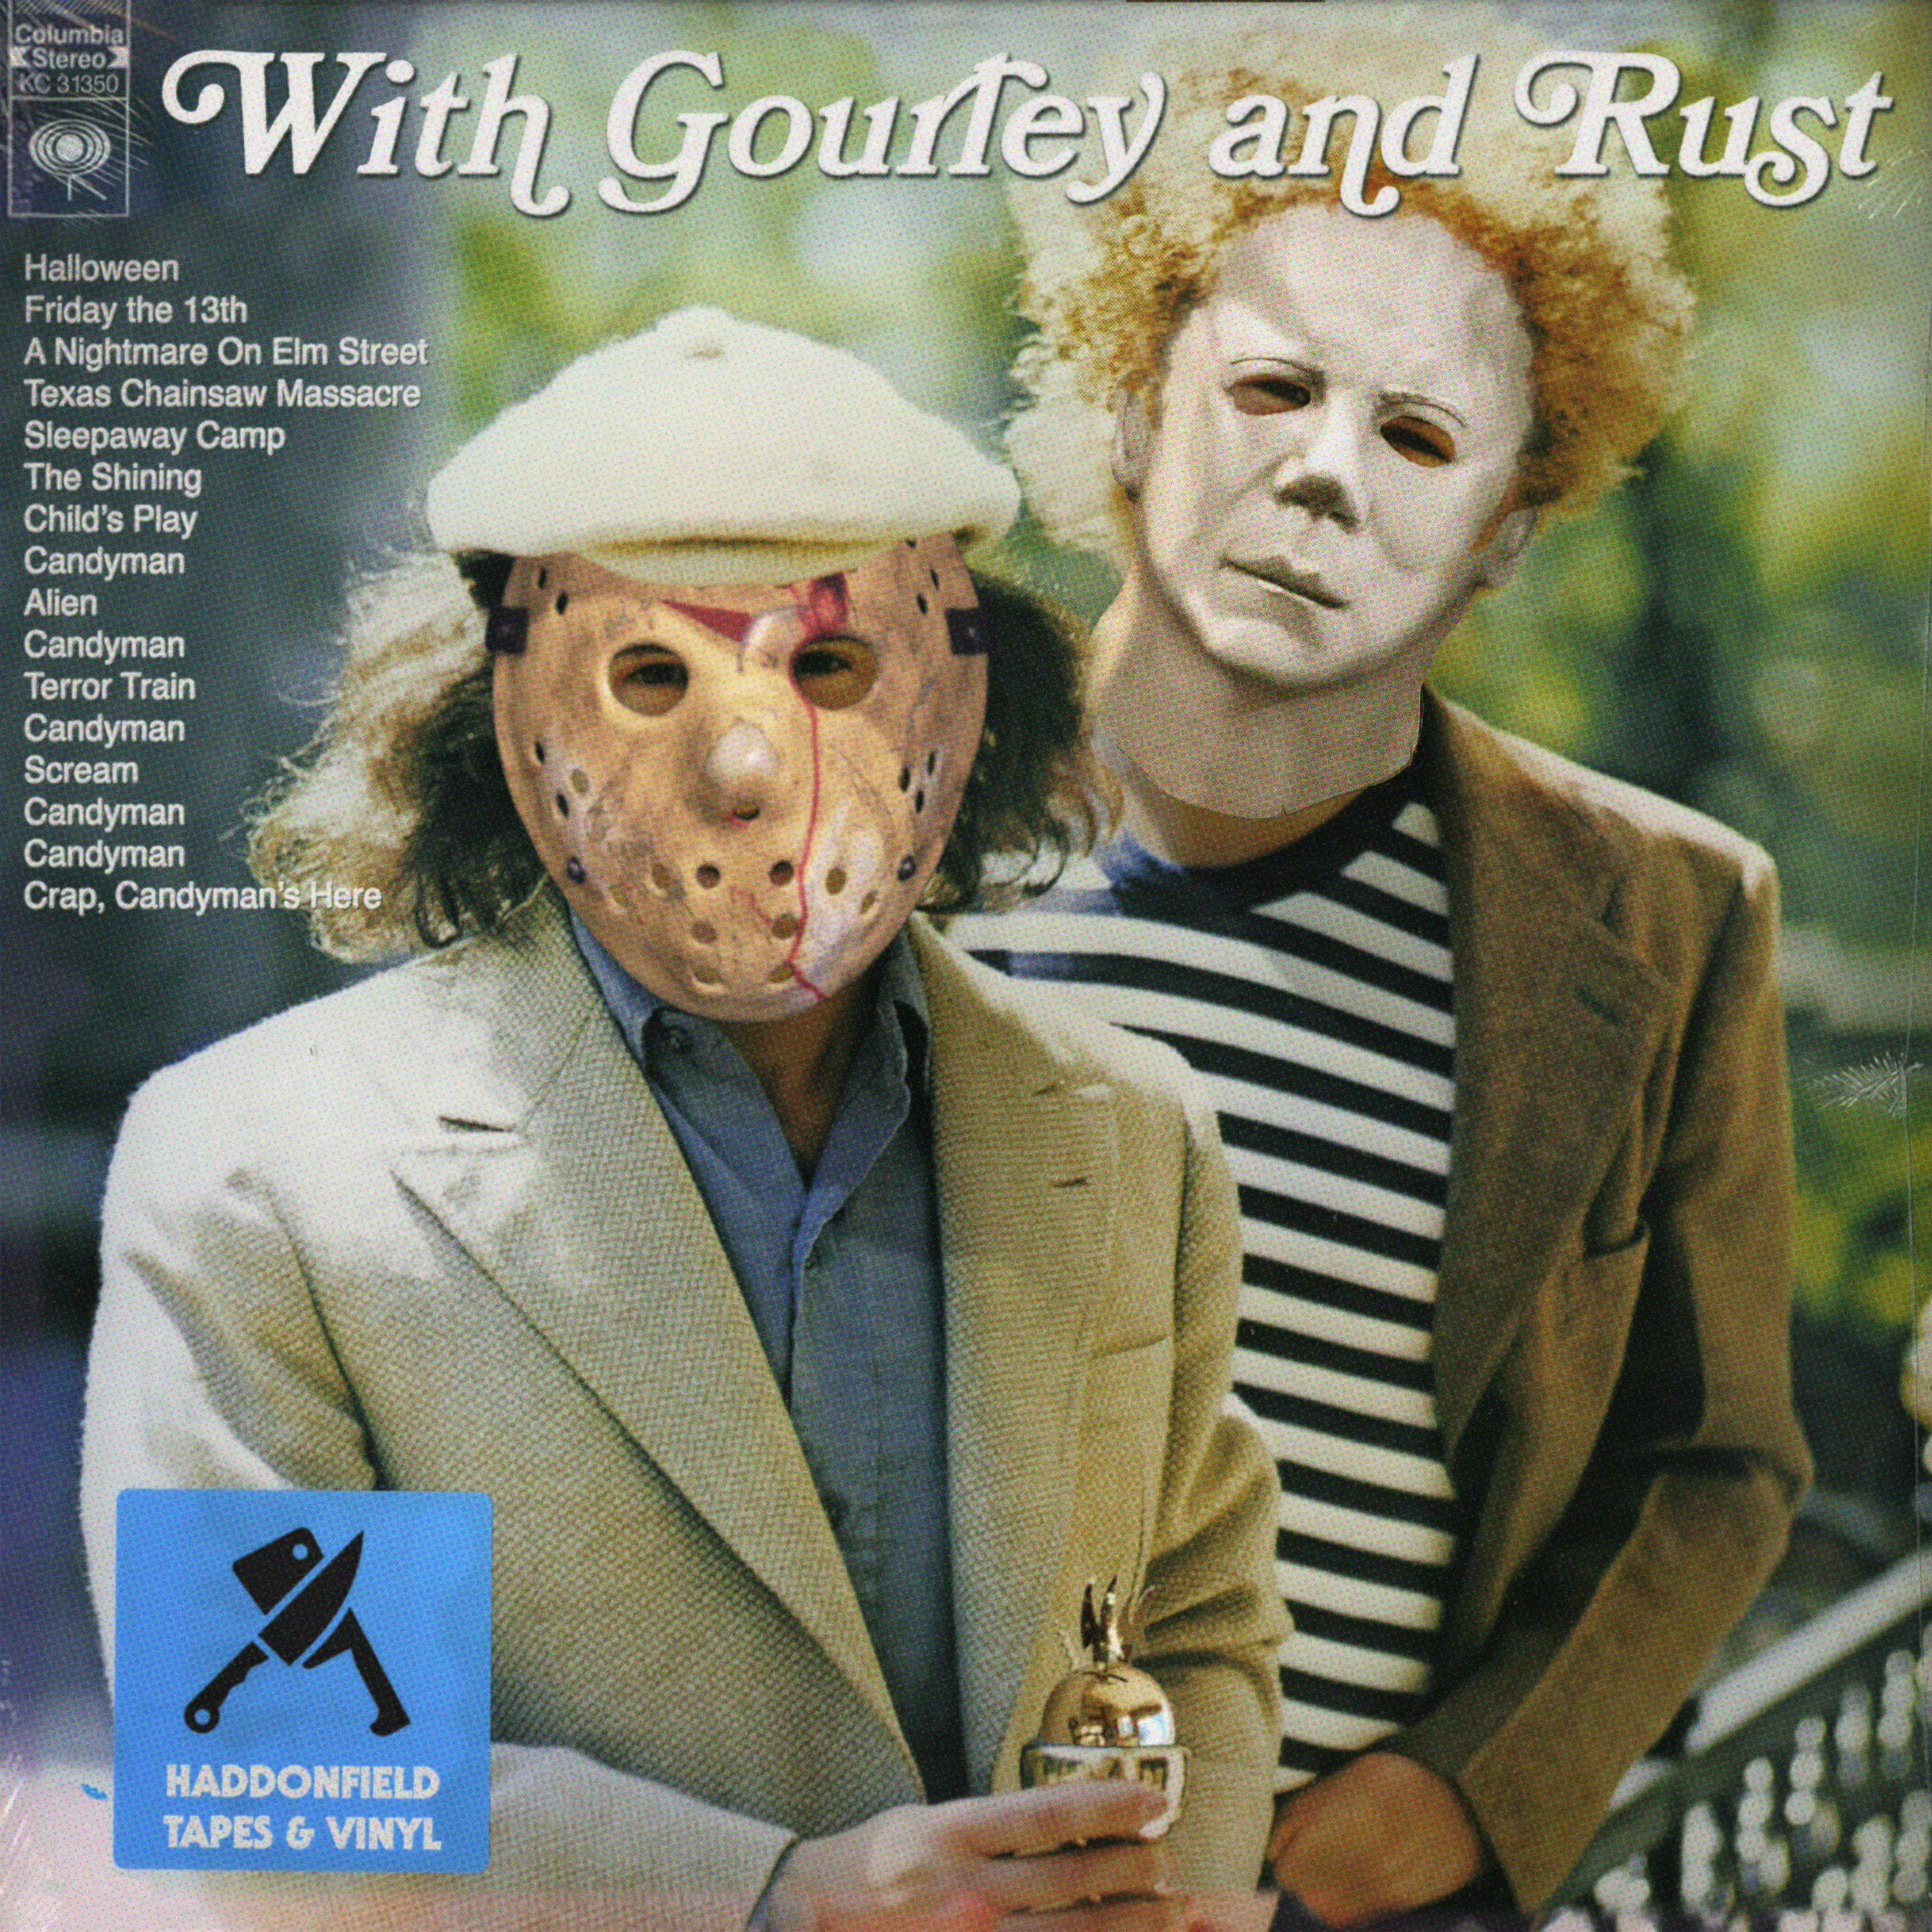 In Voorhees We Trust With Gourley and Rust: Part VII